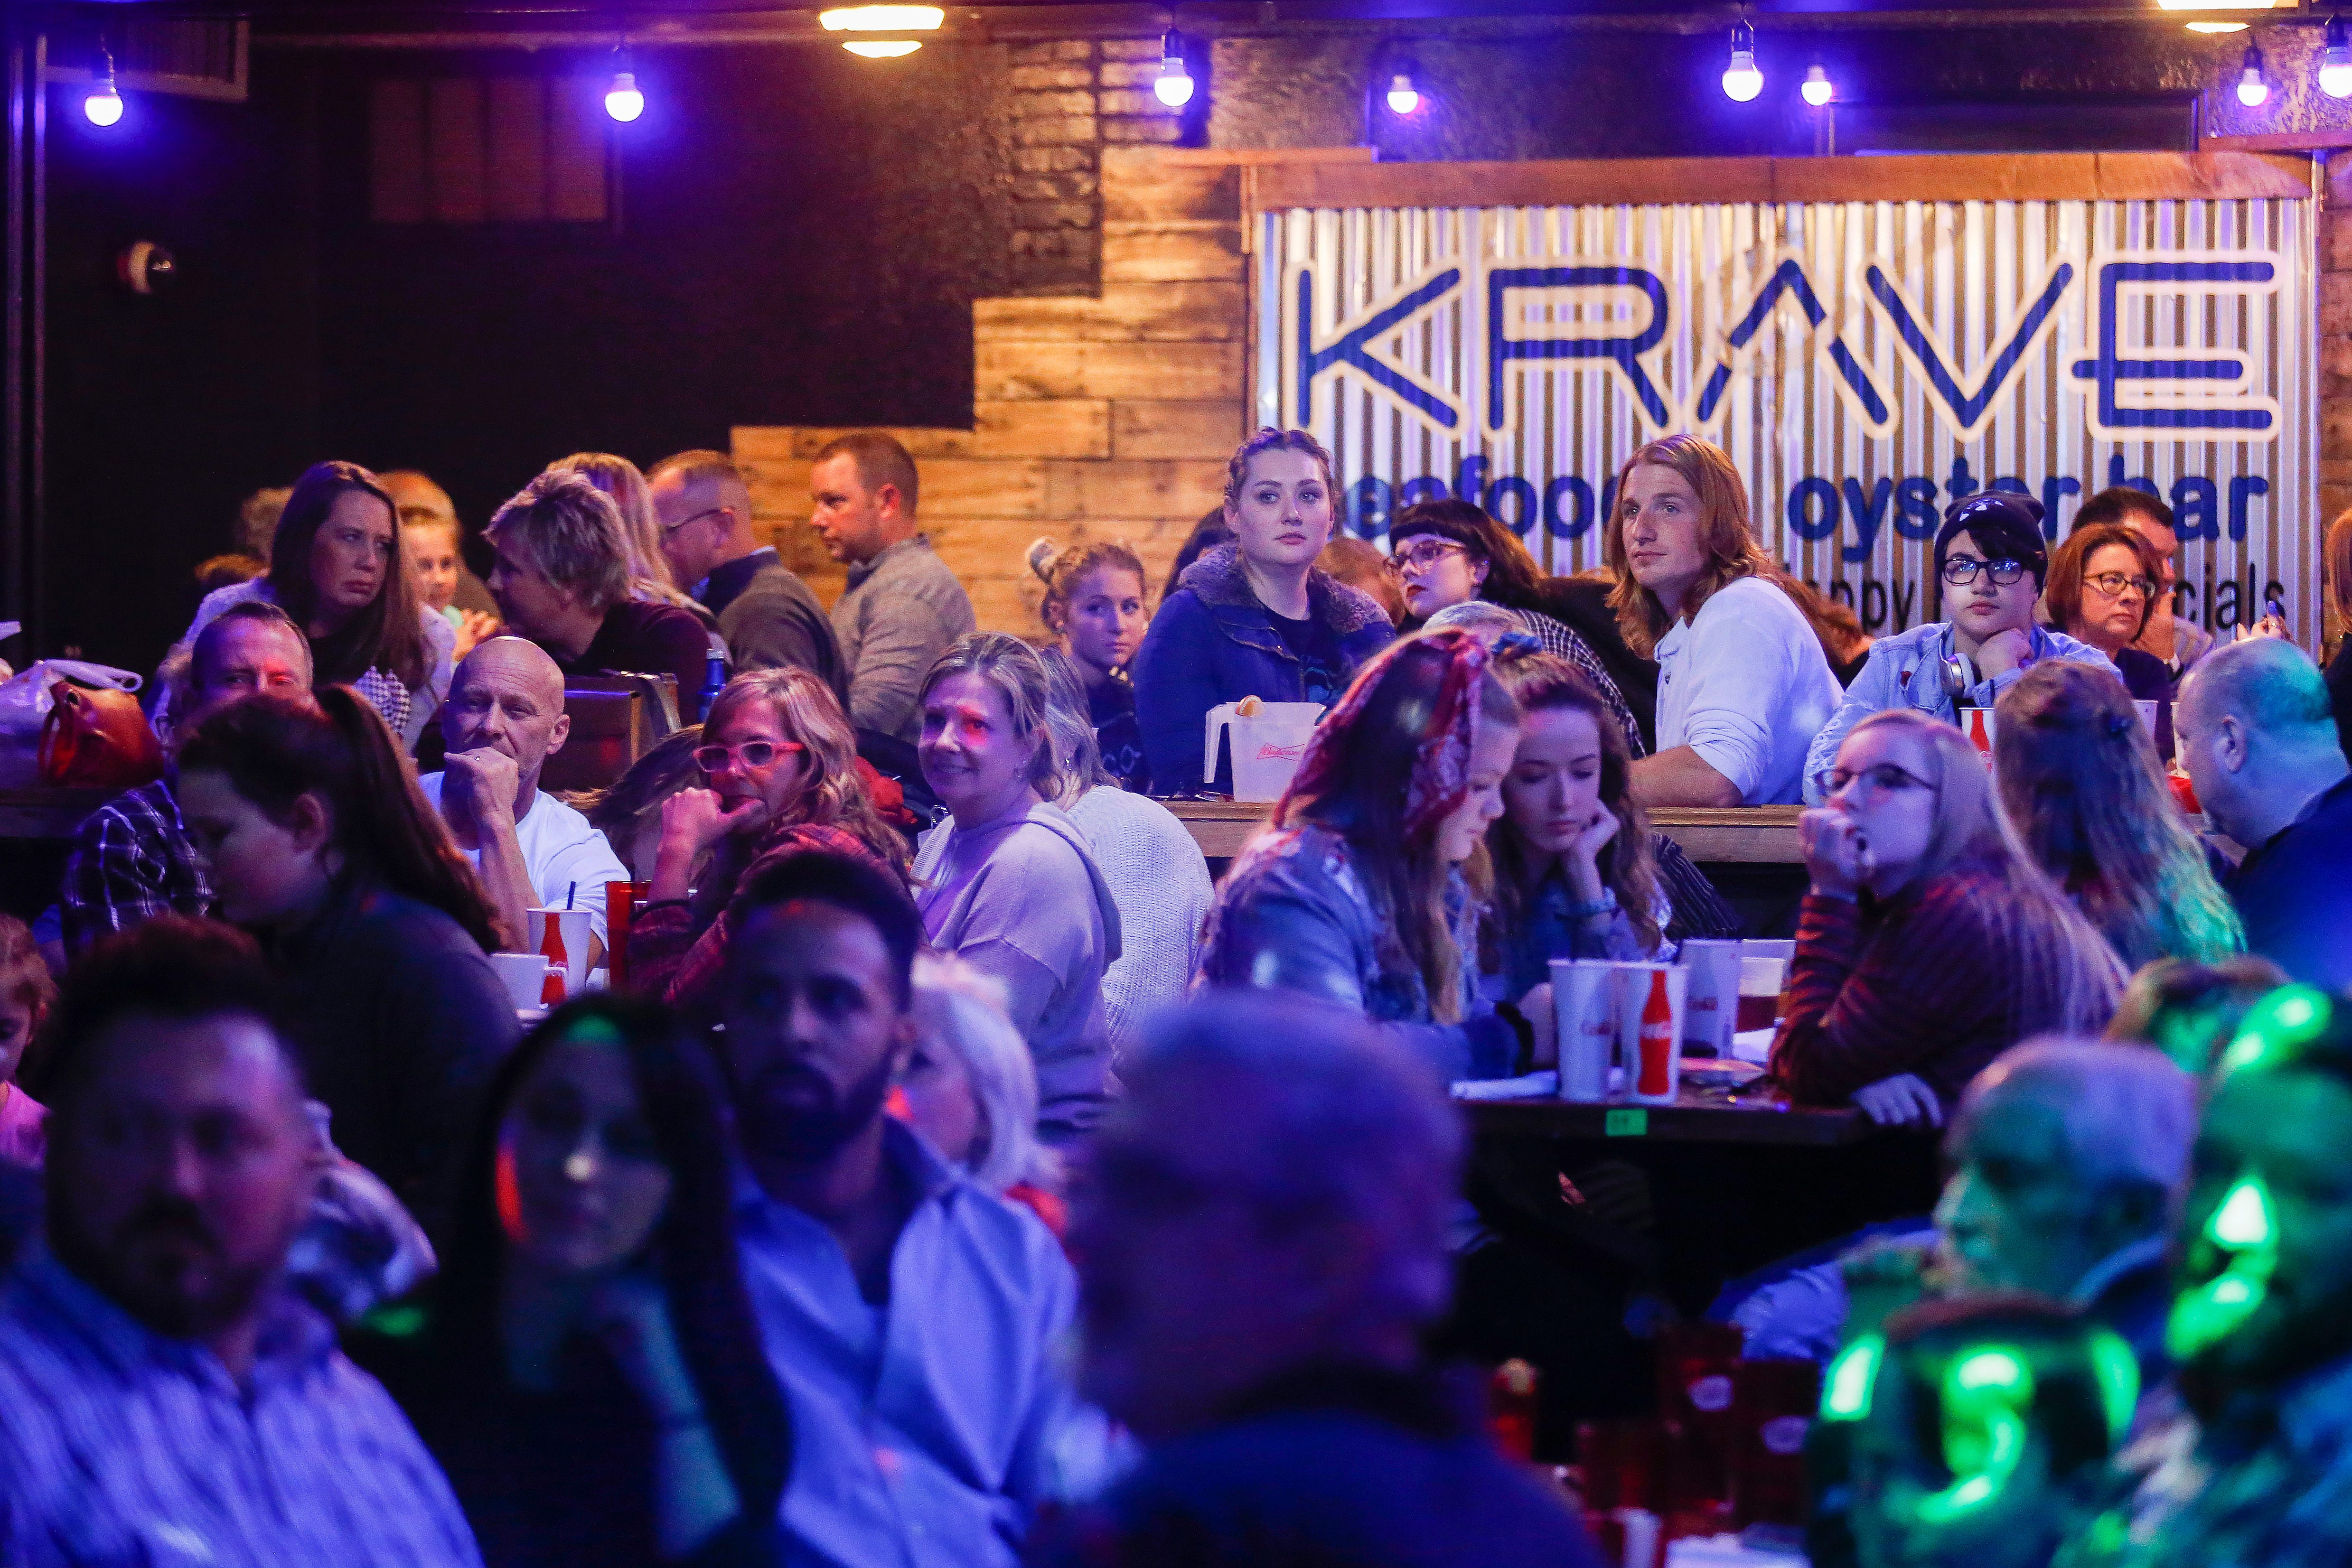 A large crowd watches Fishing for Saturday perform at Krave on Friday, Jan. 18, 2019.